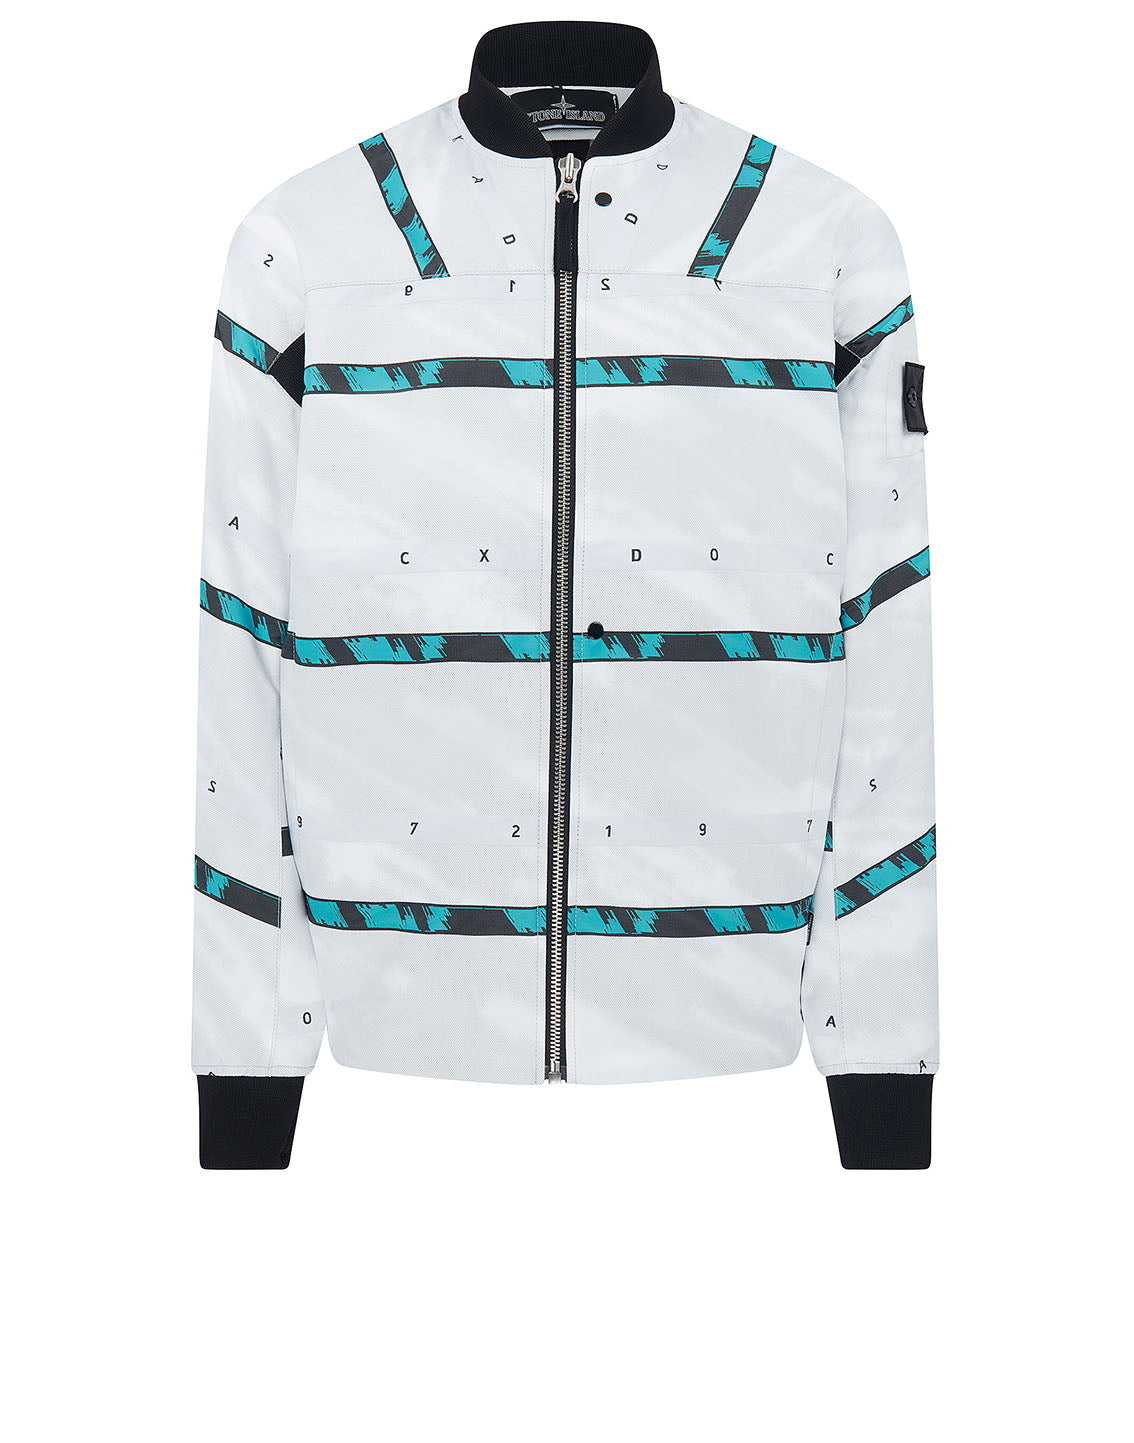 40812 BOMBER Jacket in White